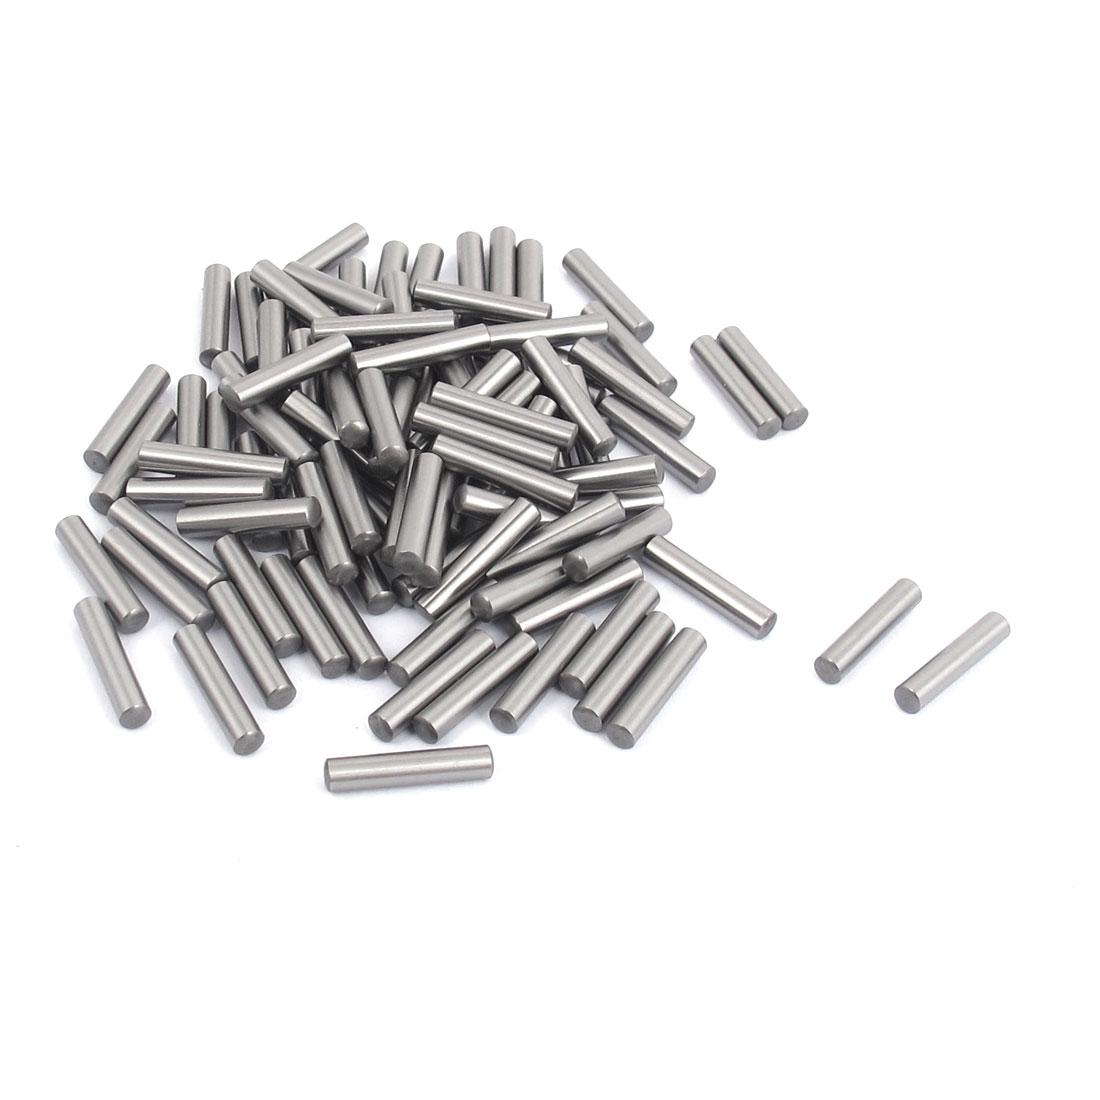 200 Pcs 3.25mm Diameter 15.8mm Length Cylinder Parallel Dowel Pins Fasten Elements Gray